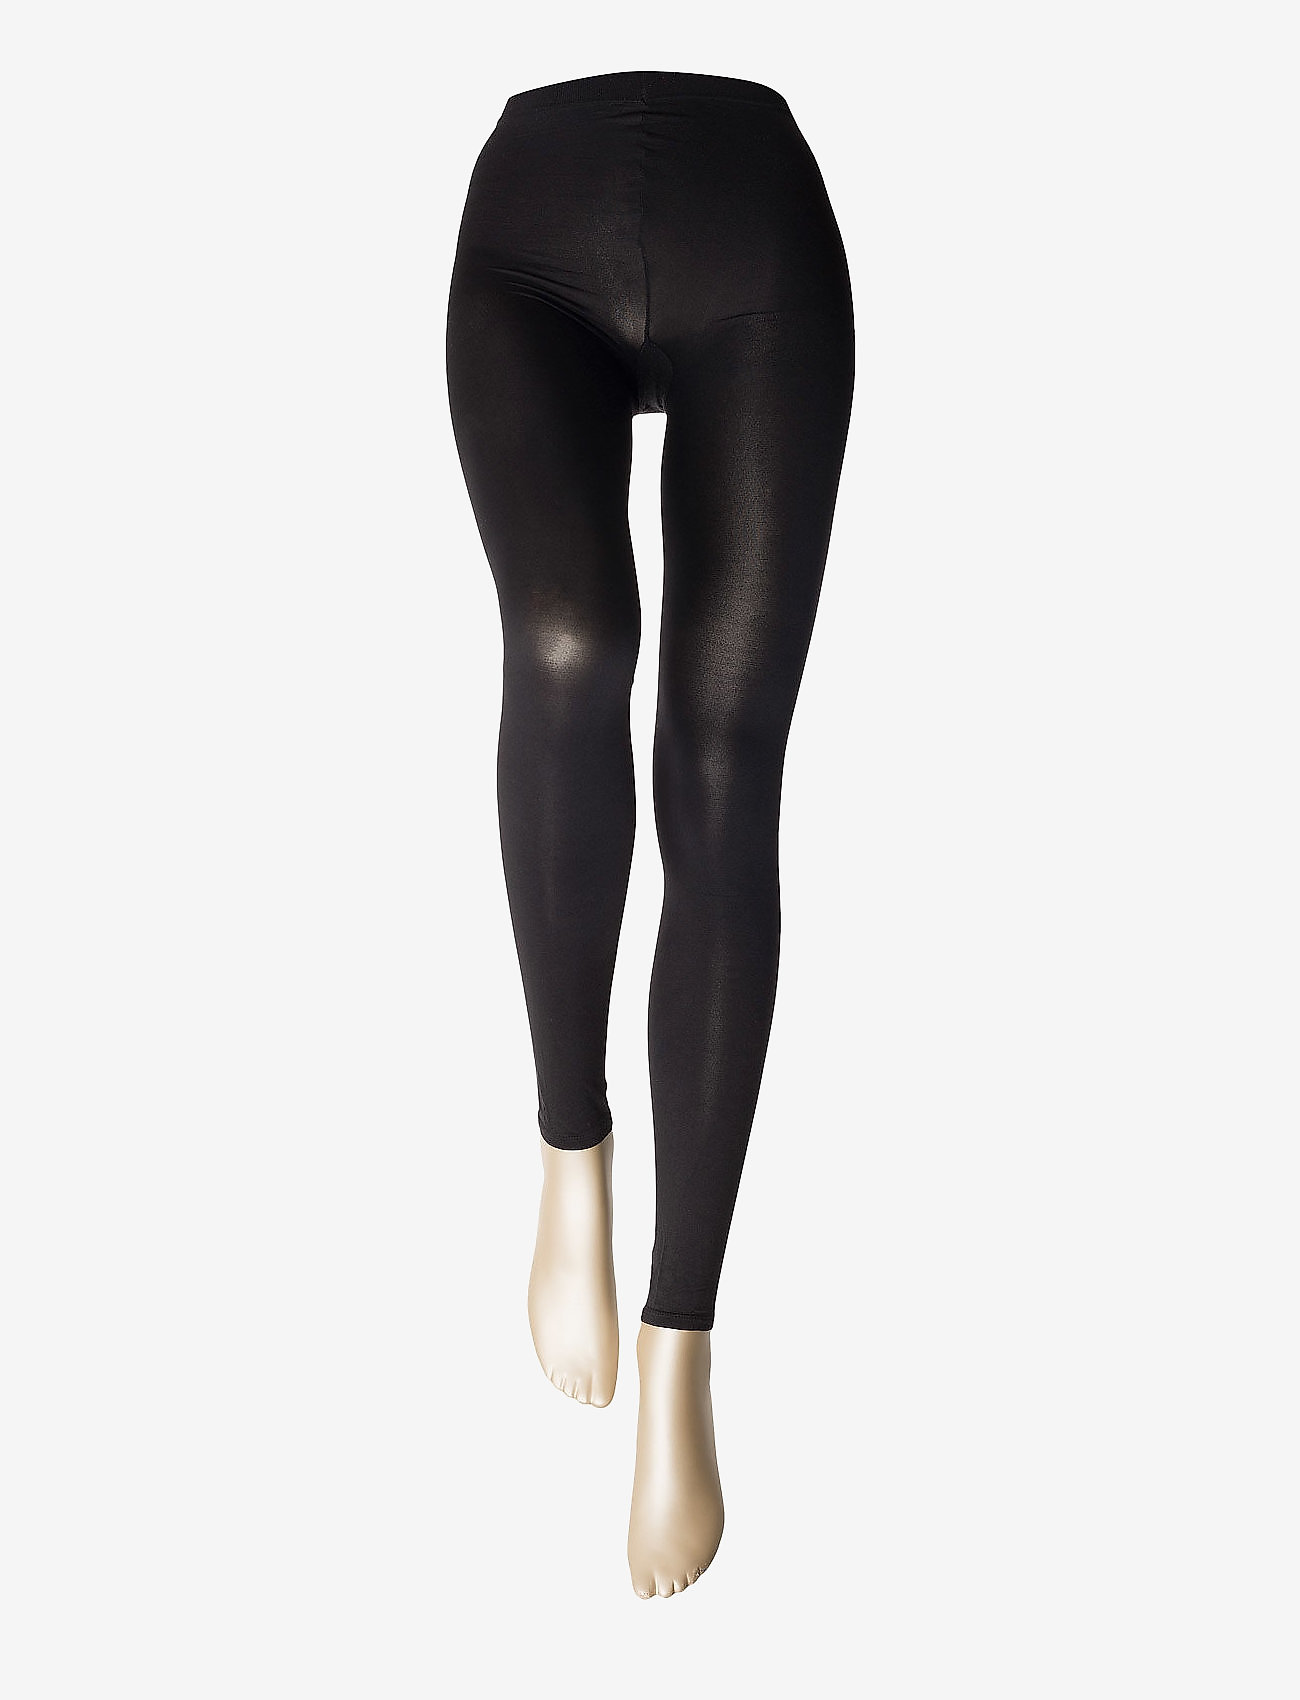 Vogue - Ladies den leggings, Opaque Leggings 3D 80den - strumpbyxor - black - 1